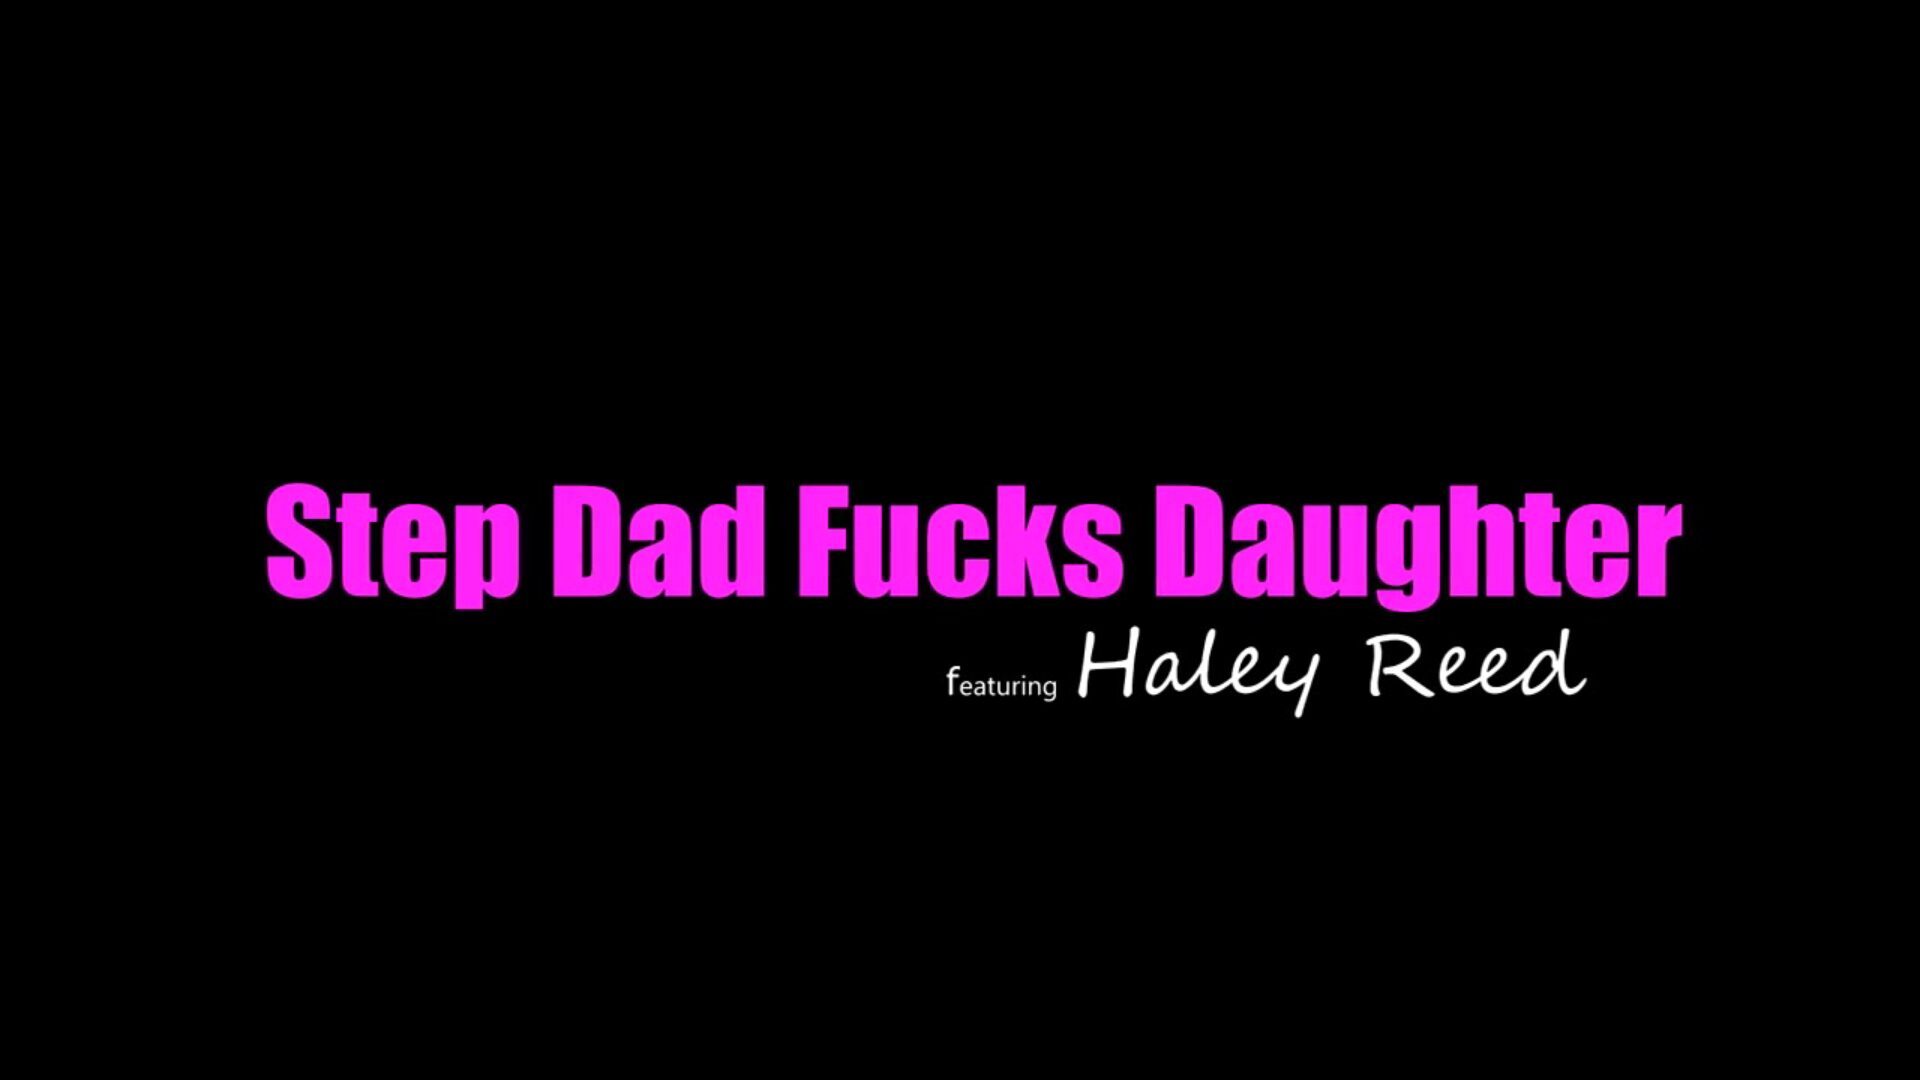 Bratty Sis - Pervy Dad Fucks Daughter While Mom Is Near! S3:E7 When tiny blonde Haley is noticeably interested in her step-dad it doesn't take lengthy for him to open up her youthful cunt with his massive dong and plow her untill they are almost caught by mama